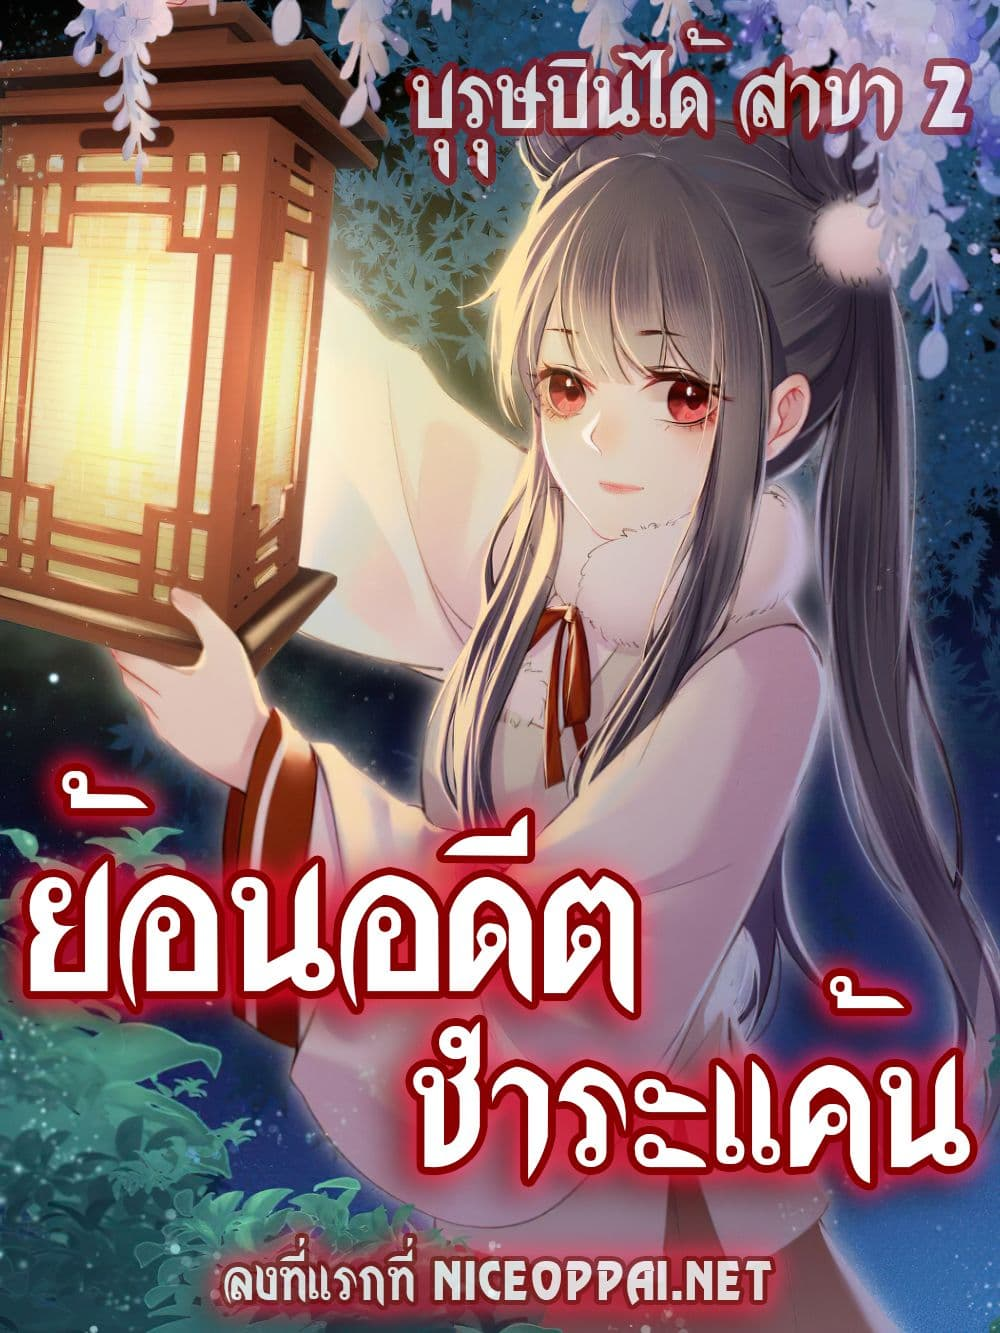 The Rebirth Daughter is not Good-ตอนที่ 8